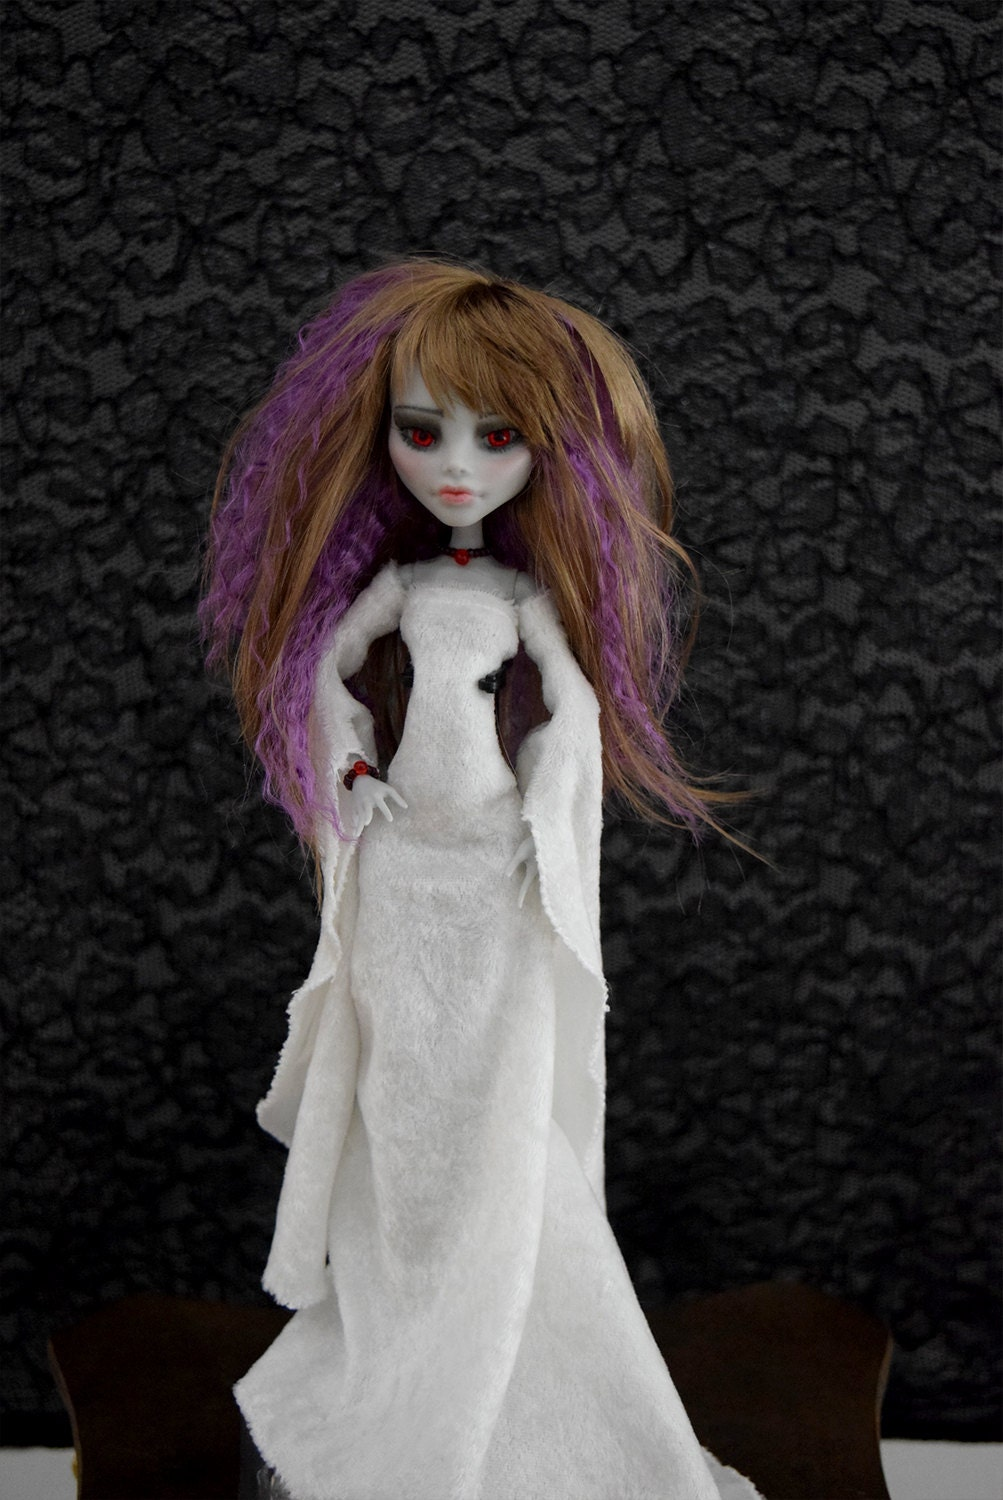 Fashion star fillies ghost of the doll Toronto Star - m The Star Canada's largest